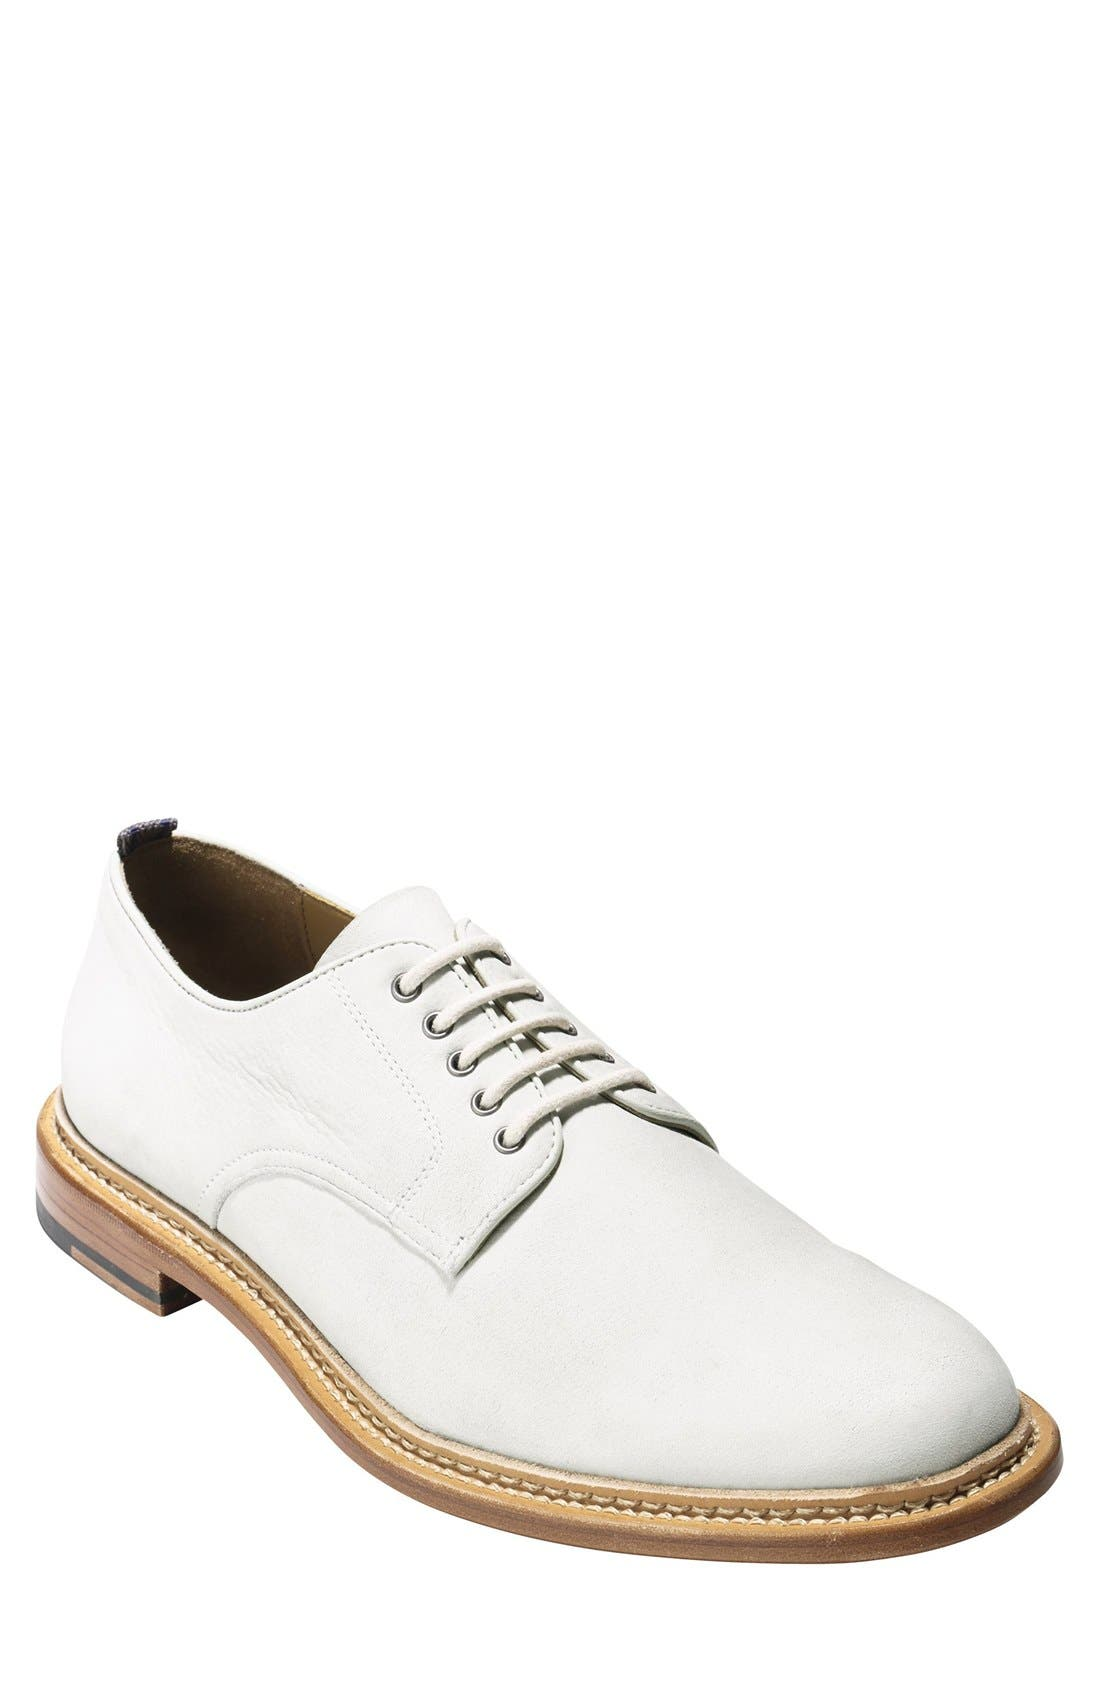 'Willet' Nubuck Plain Toe Derby,                             Main thumbnail 1, color,                             Ivory